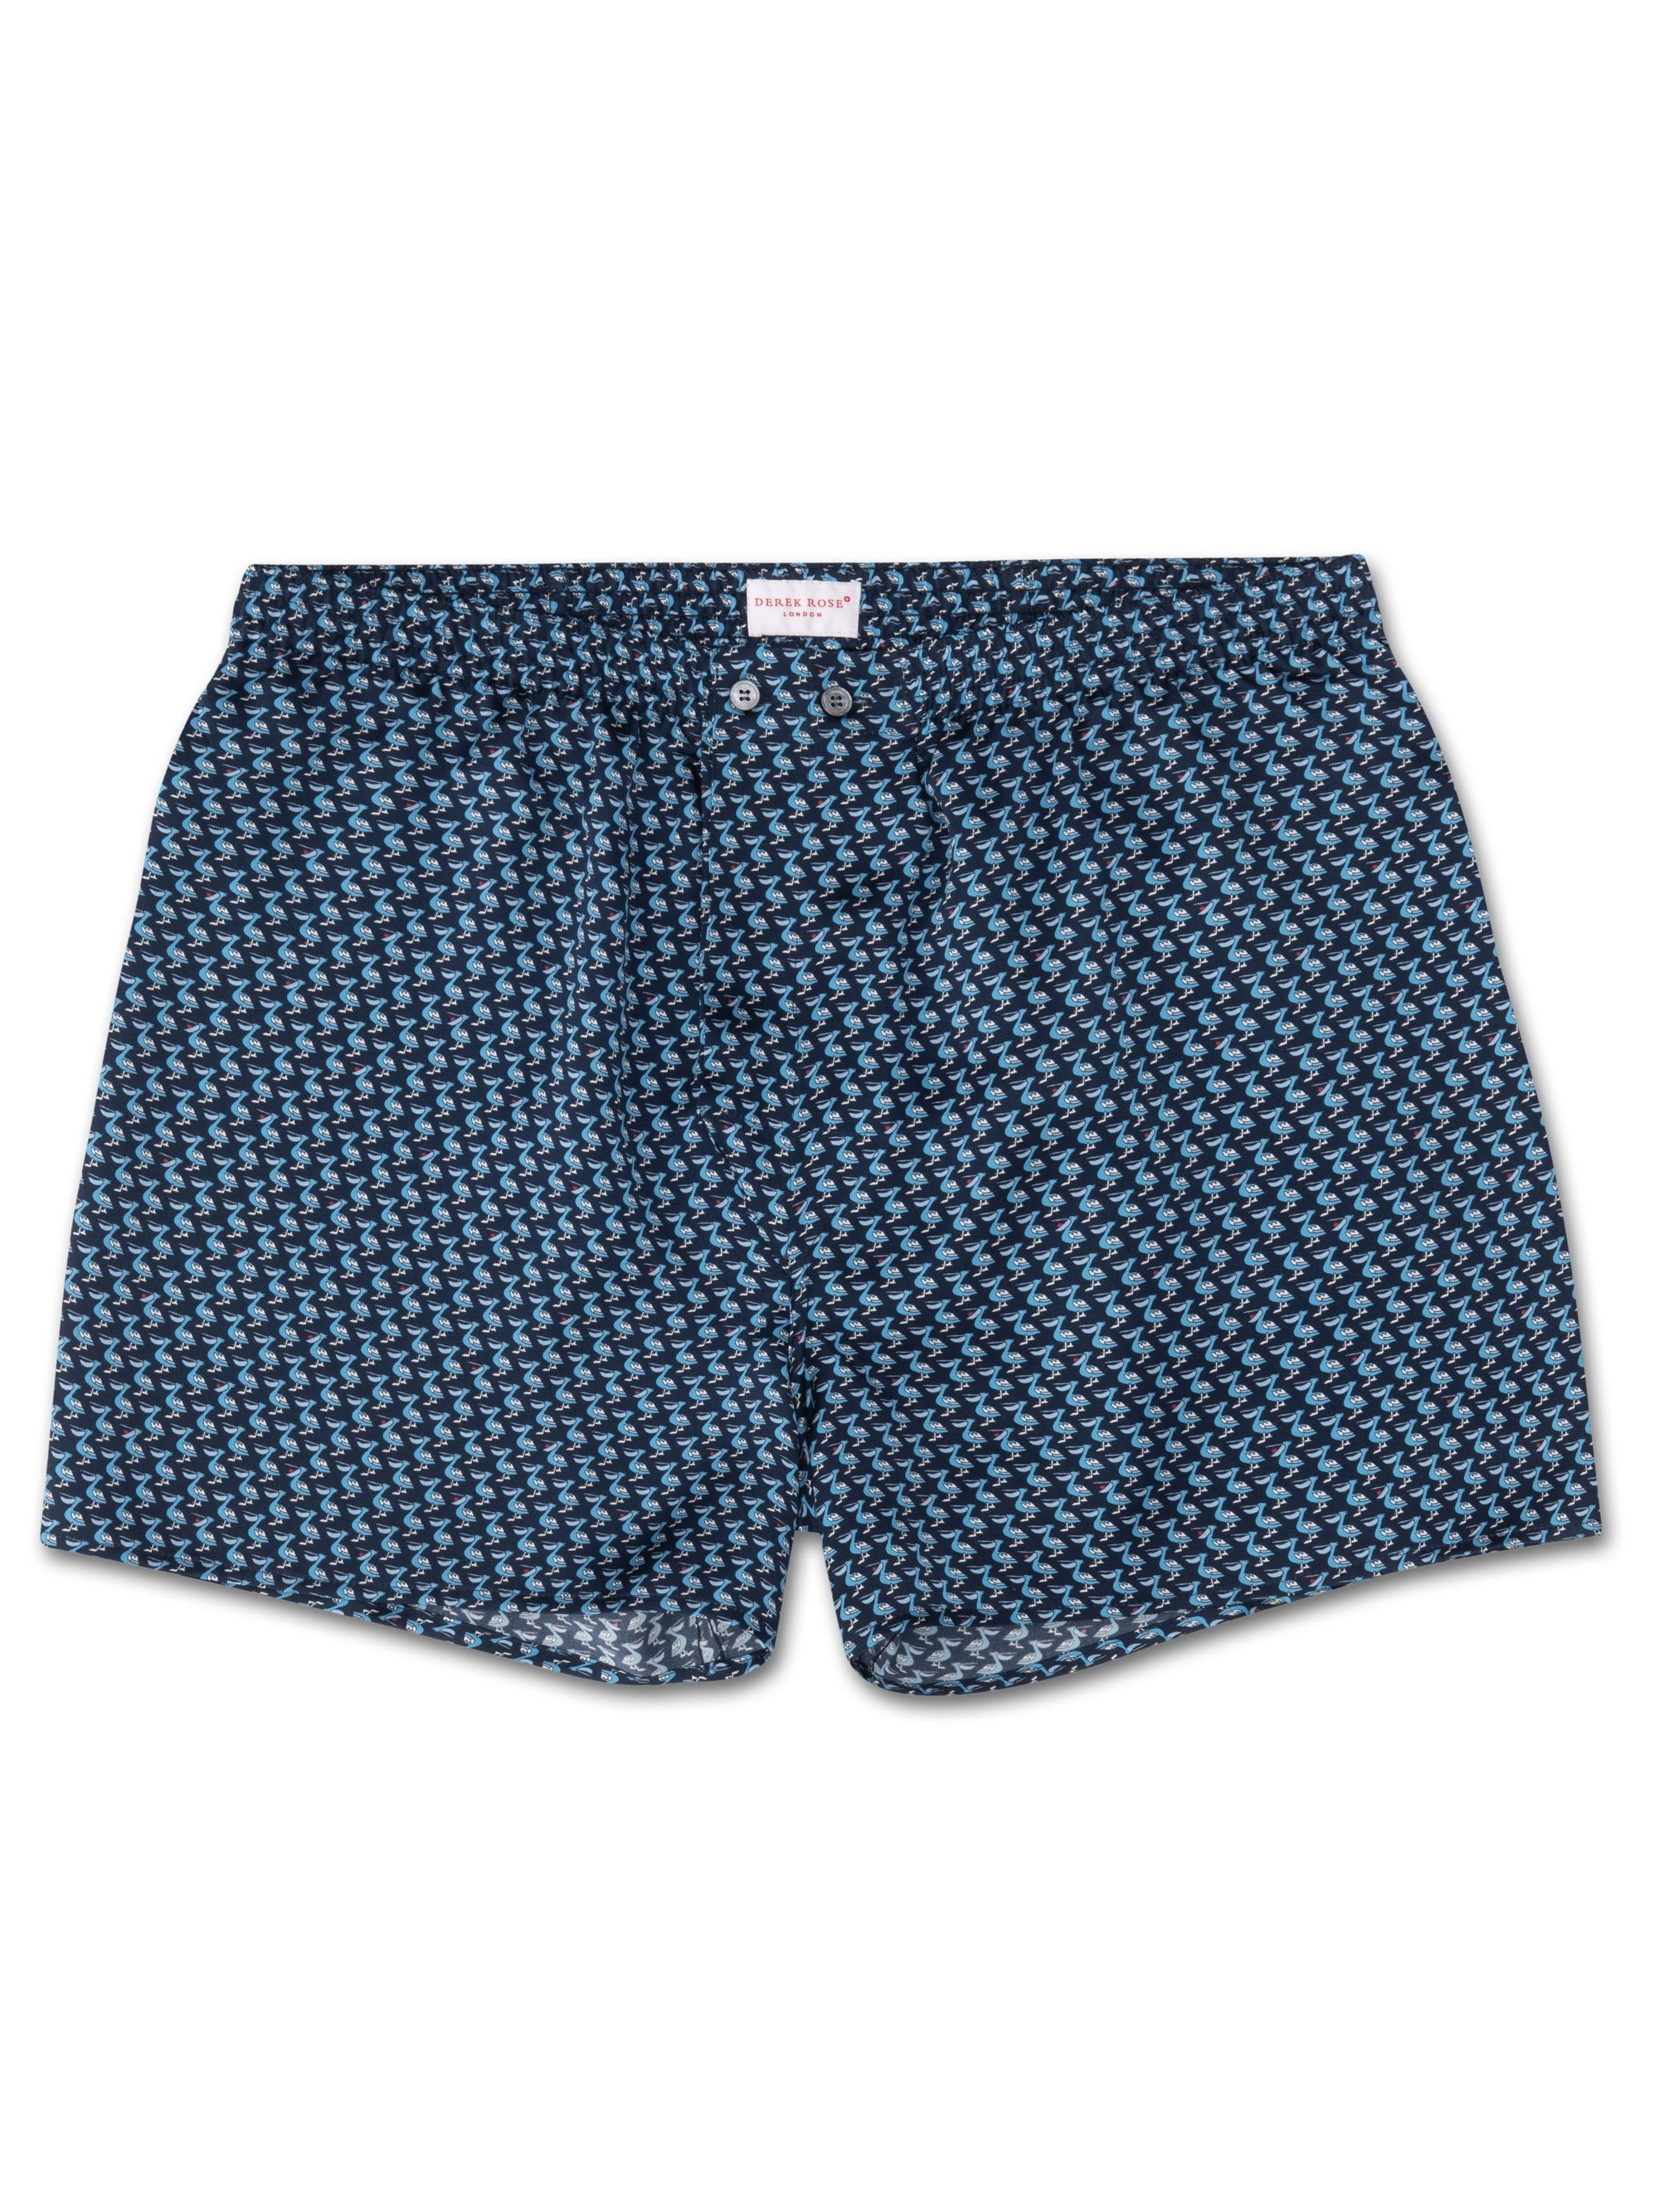 Men's Classic Fit Boxer Shorts Brindisi 32 Pure Silk Satin Navy